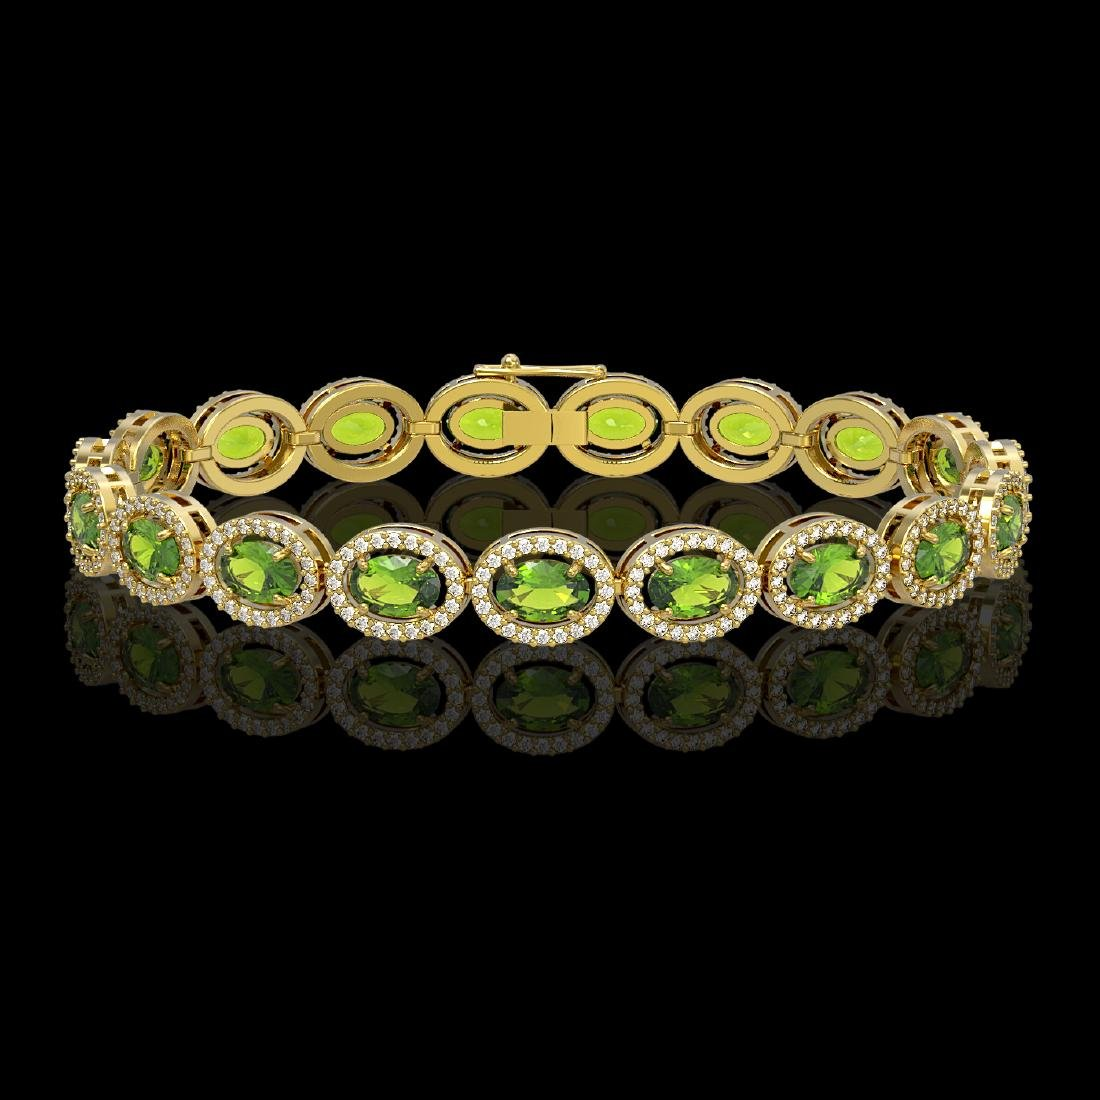 13.87 CTW Peridot & Diamond Halo Bracelet 10K Yellow